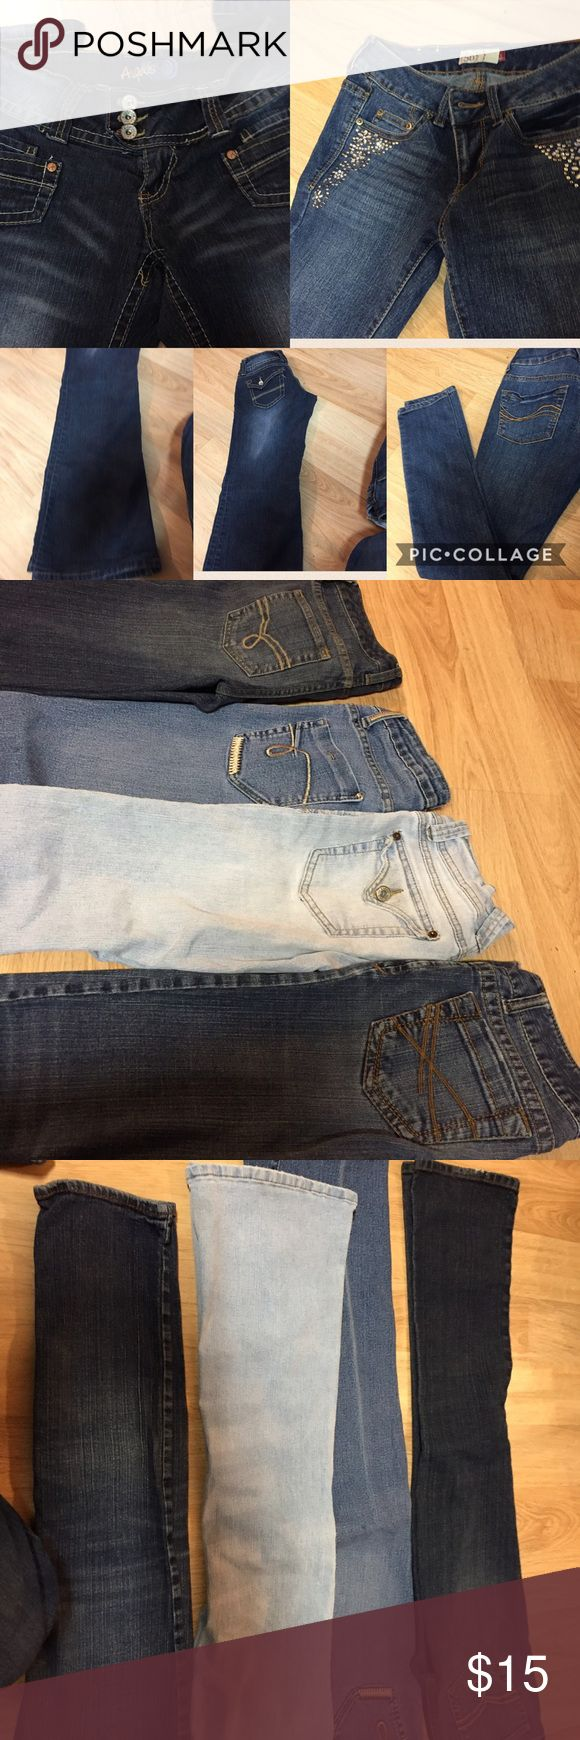 (4) jeans size 1/2 • Angels•Aeropostale•amer rag• American Rag bootcut 1S #1 in pic ••Angels bootcut 1 reg#3 in pic light colored ••Bubblegum straight 1/2 #2 in pic •Aeropostale skinny 1/2 S #4 in pic Angels Jeans Skinny